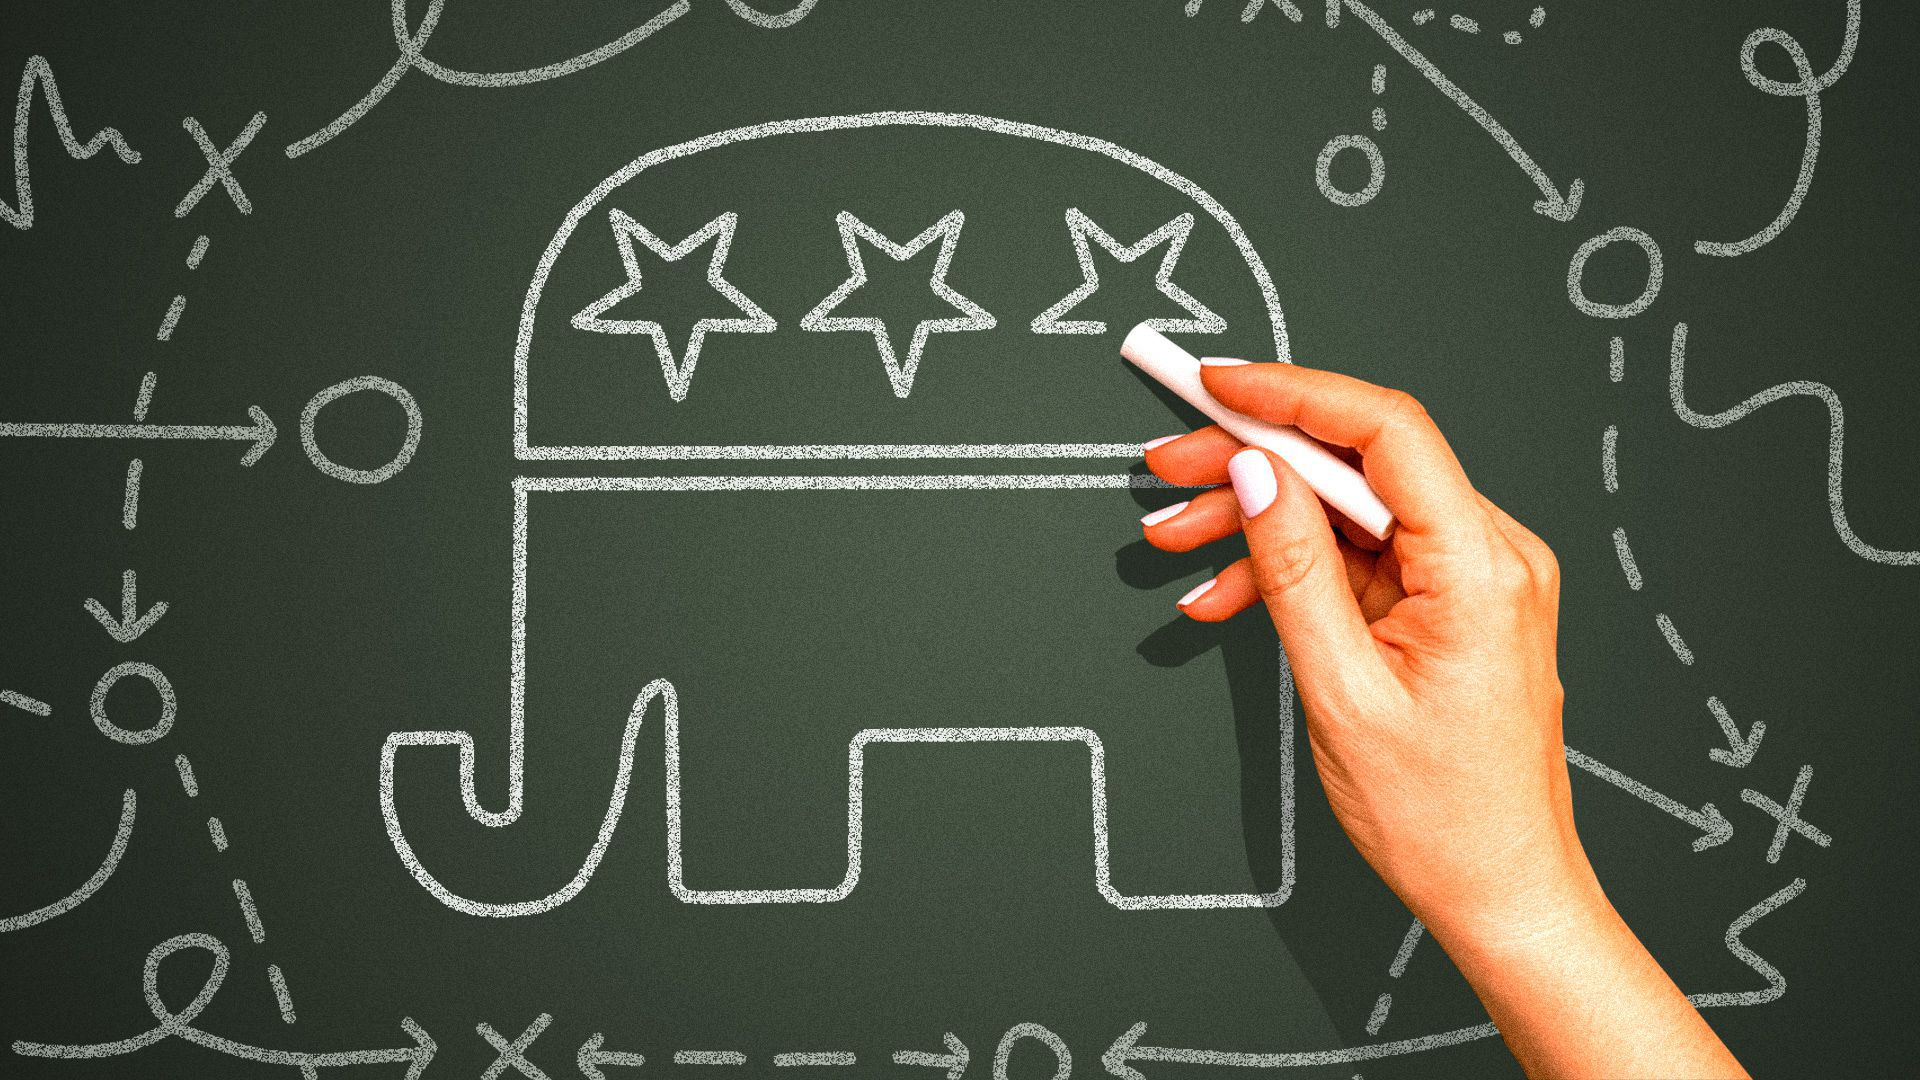 Illustration of a female hand drawing playbook style plans on a chalkboard next to the icon of the GOP.